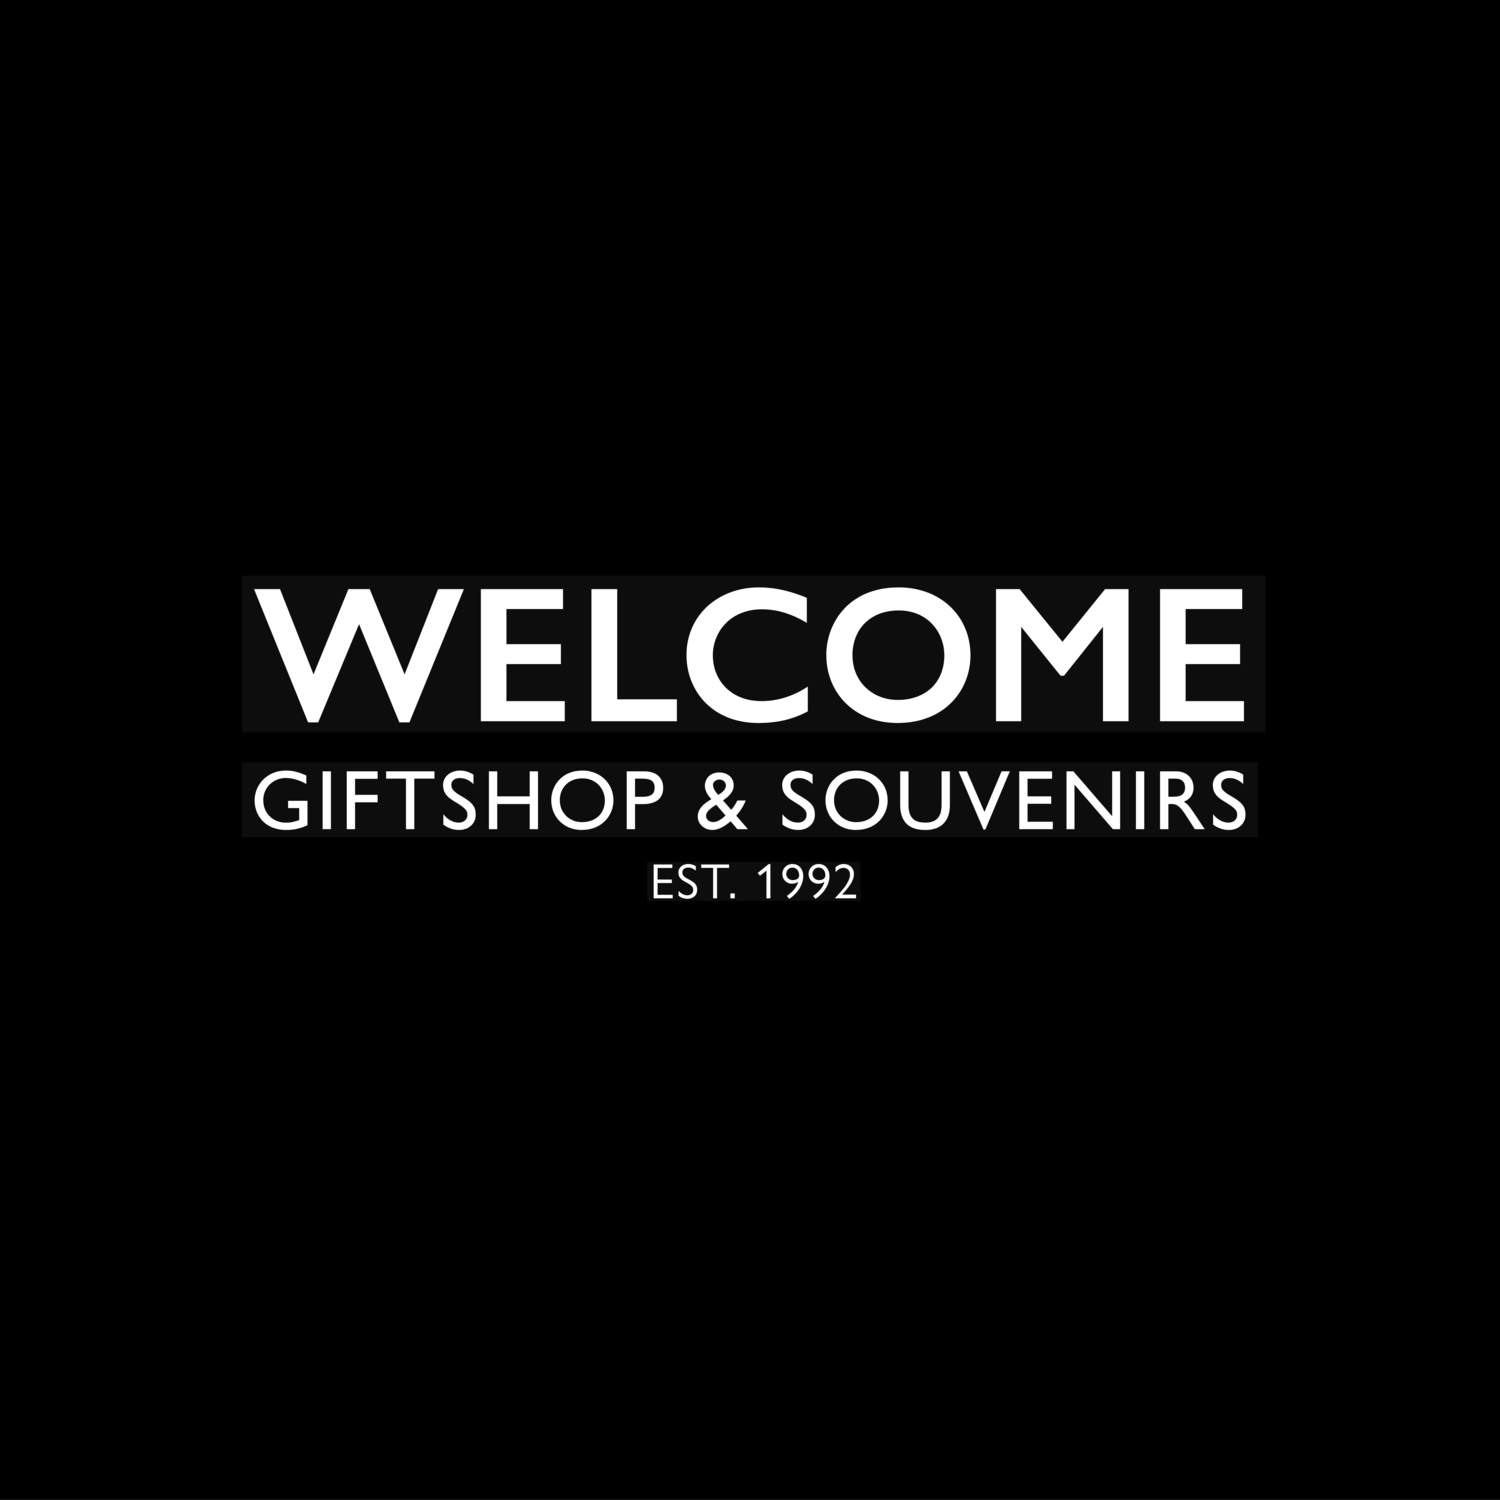 Welcome Giftshop & Souvenirs